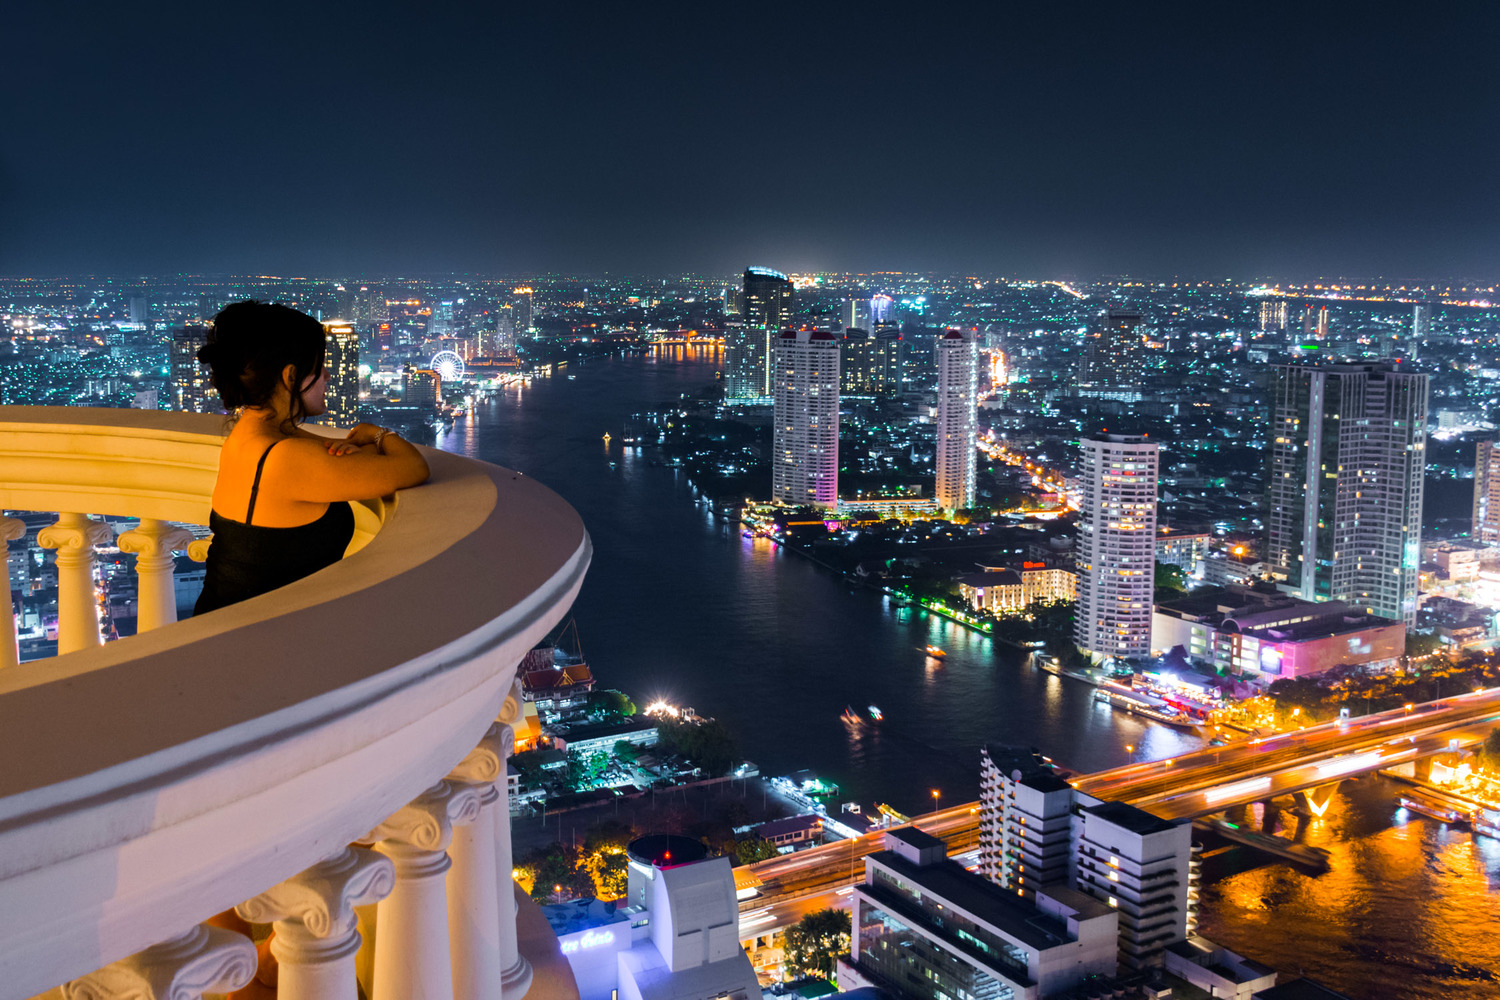 Lebua_State_NoDestinations-2-20150310.jpg?format=1500w